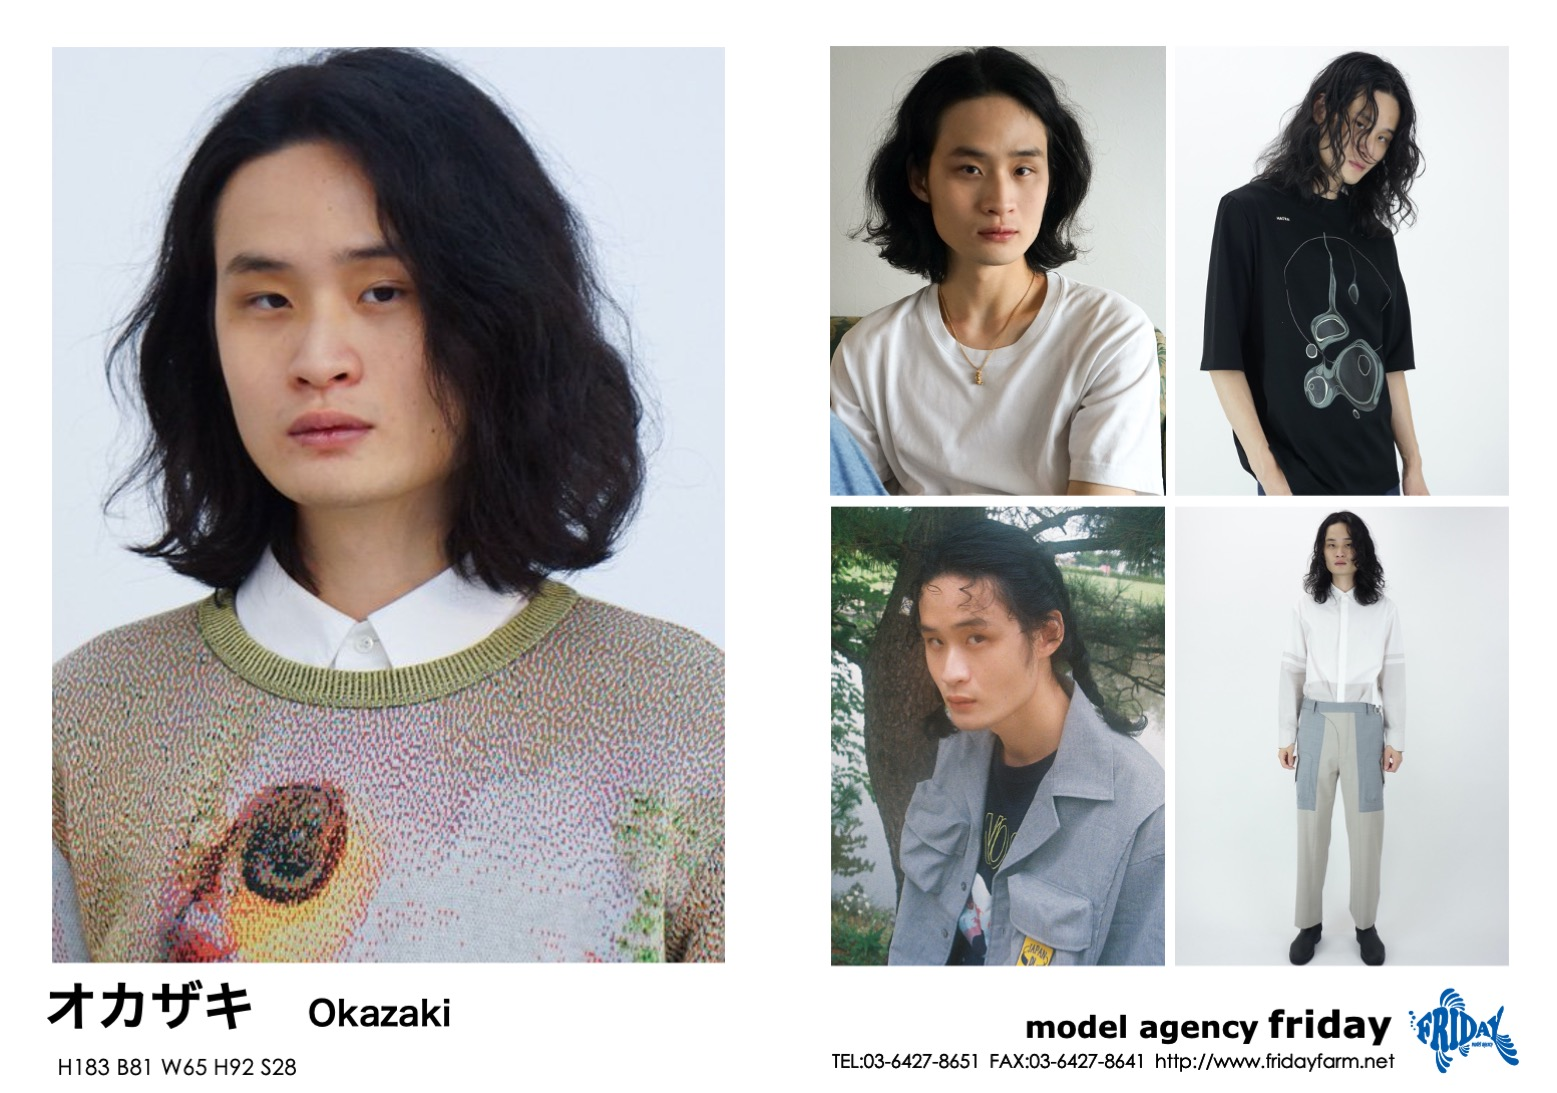 オカザキ - Okazaki | model agency friday